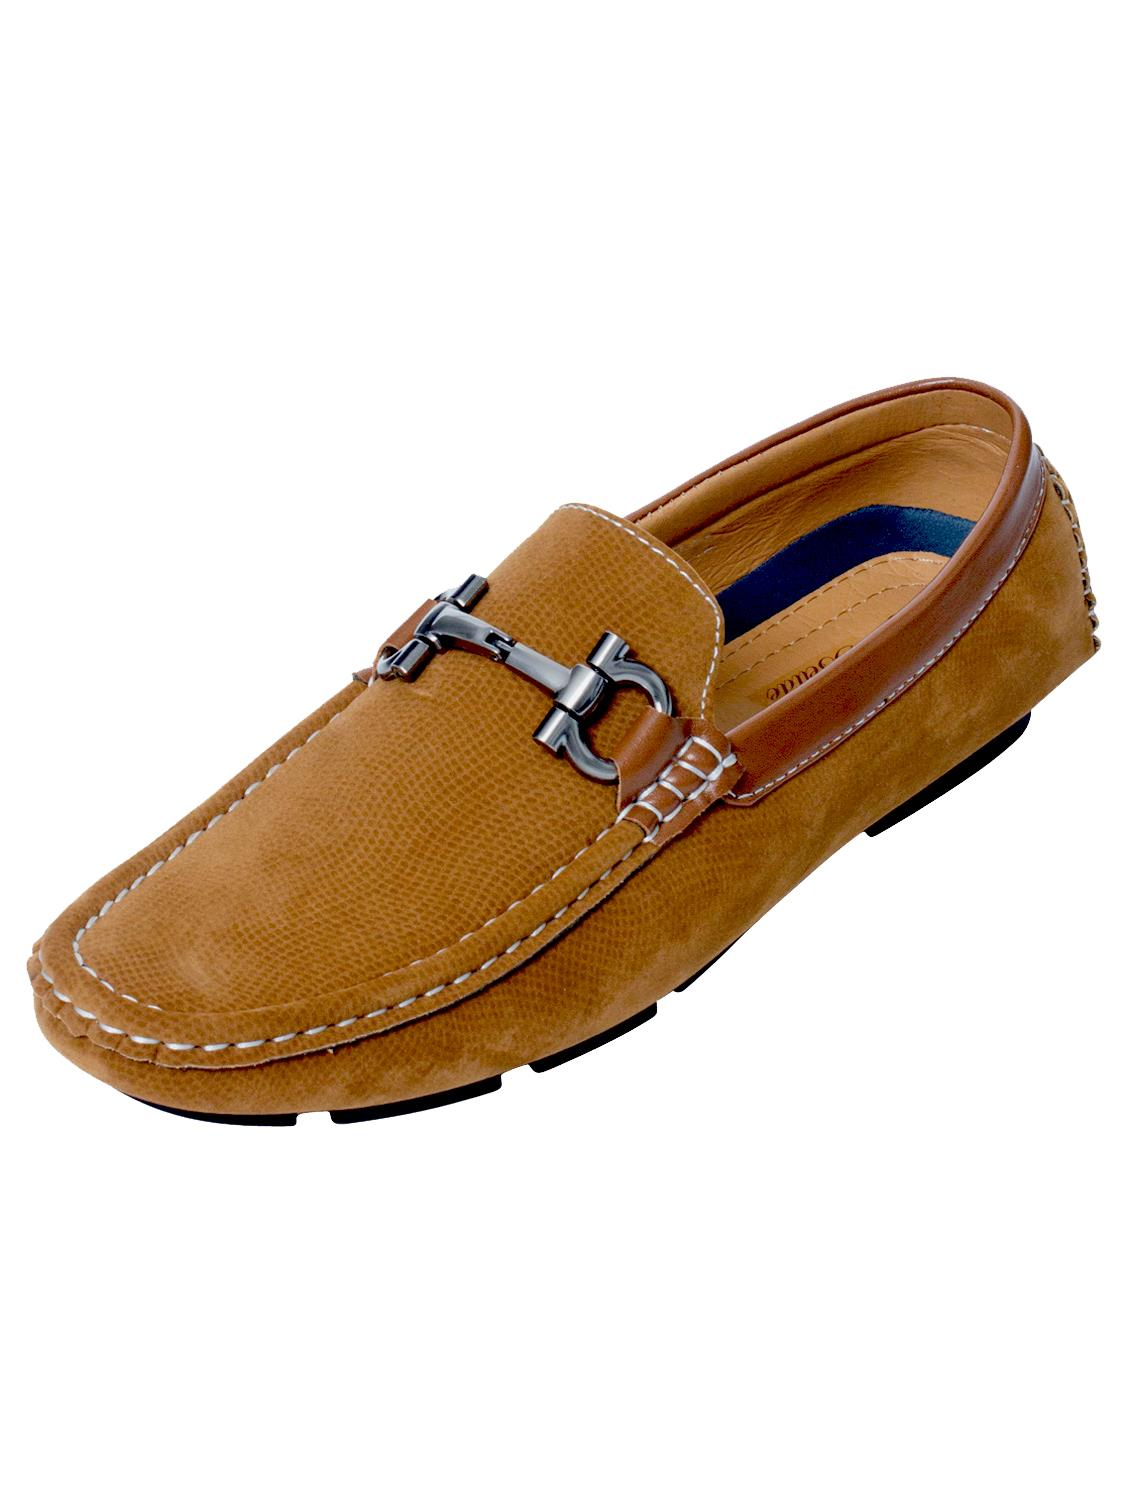 Mens-Slip-Ons-Shoes-Boat-Deck-Driving-Smart-Buckle-Moccasins-Suede-Look-Loafers thumbnail 84